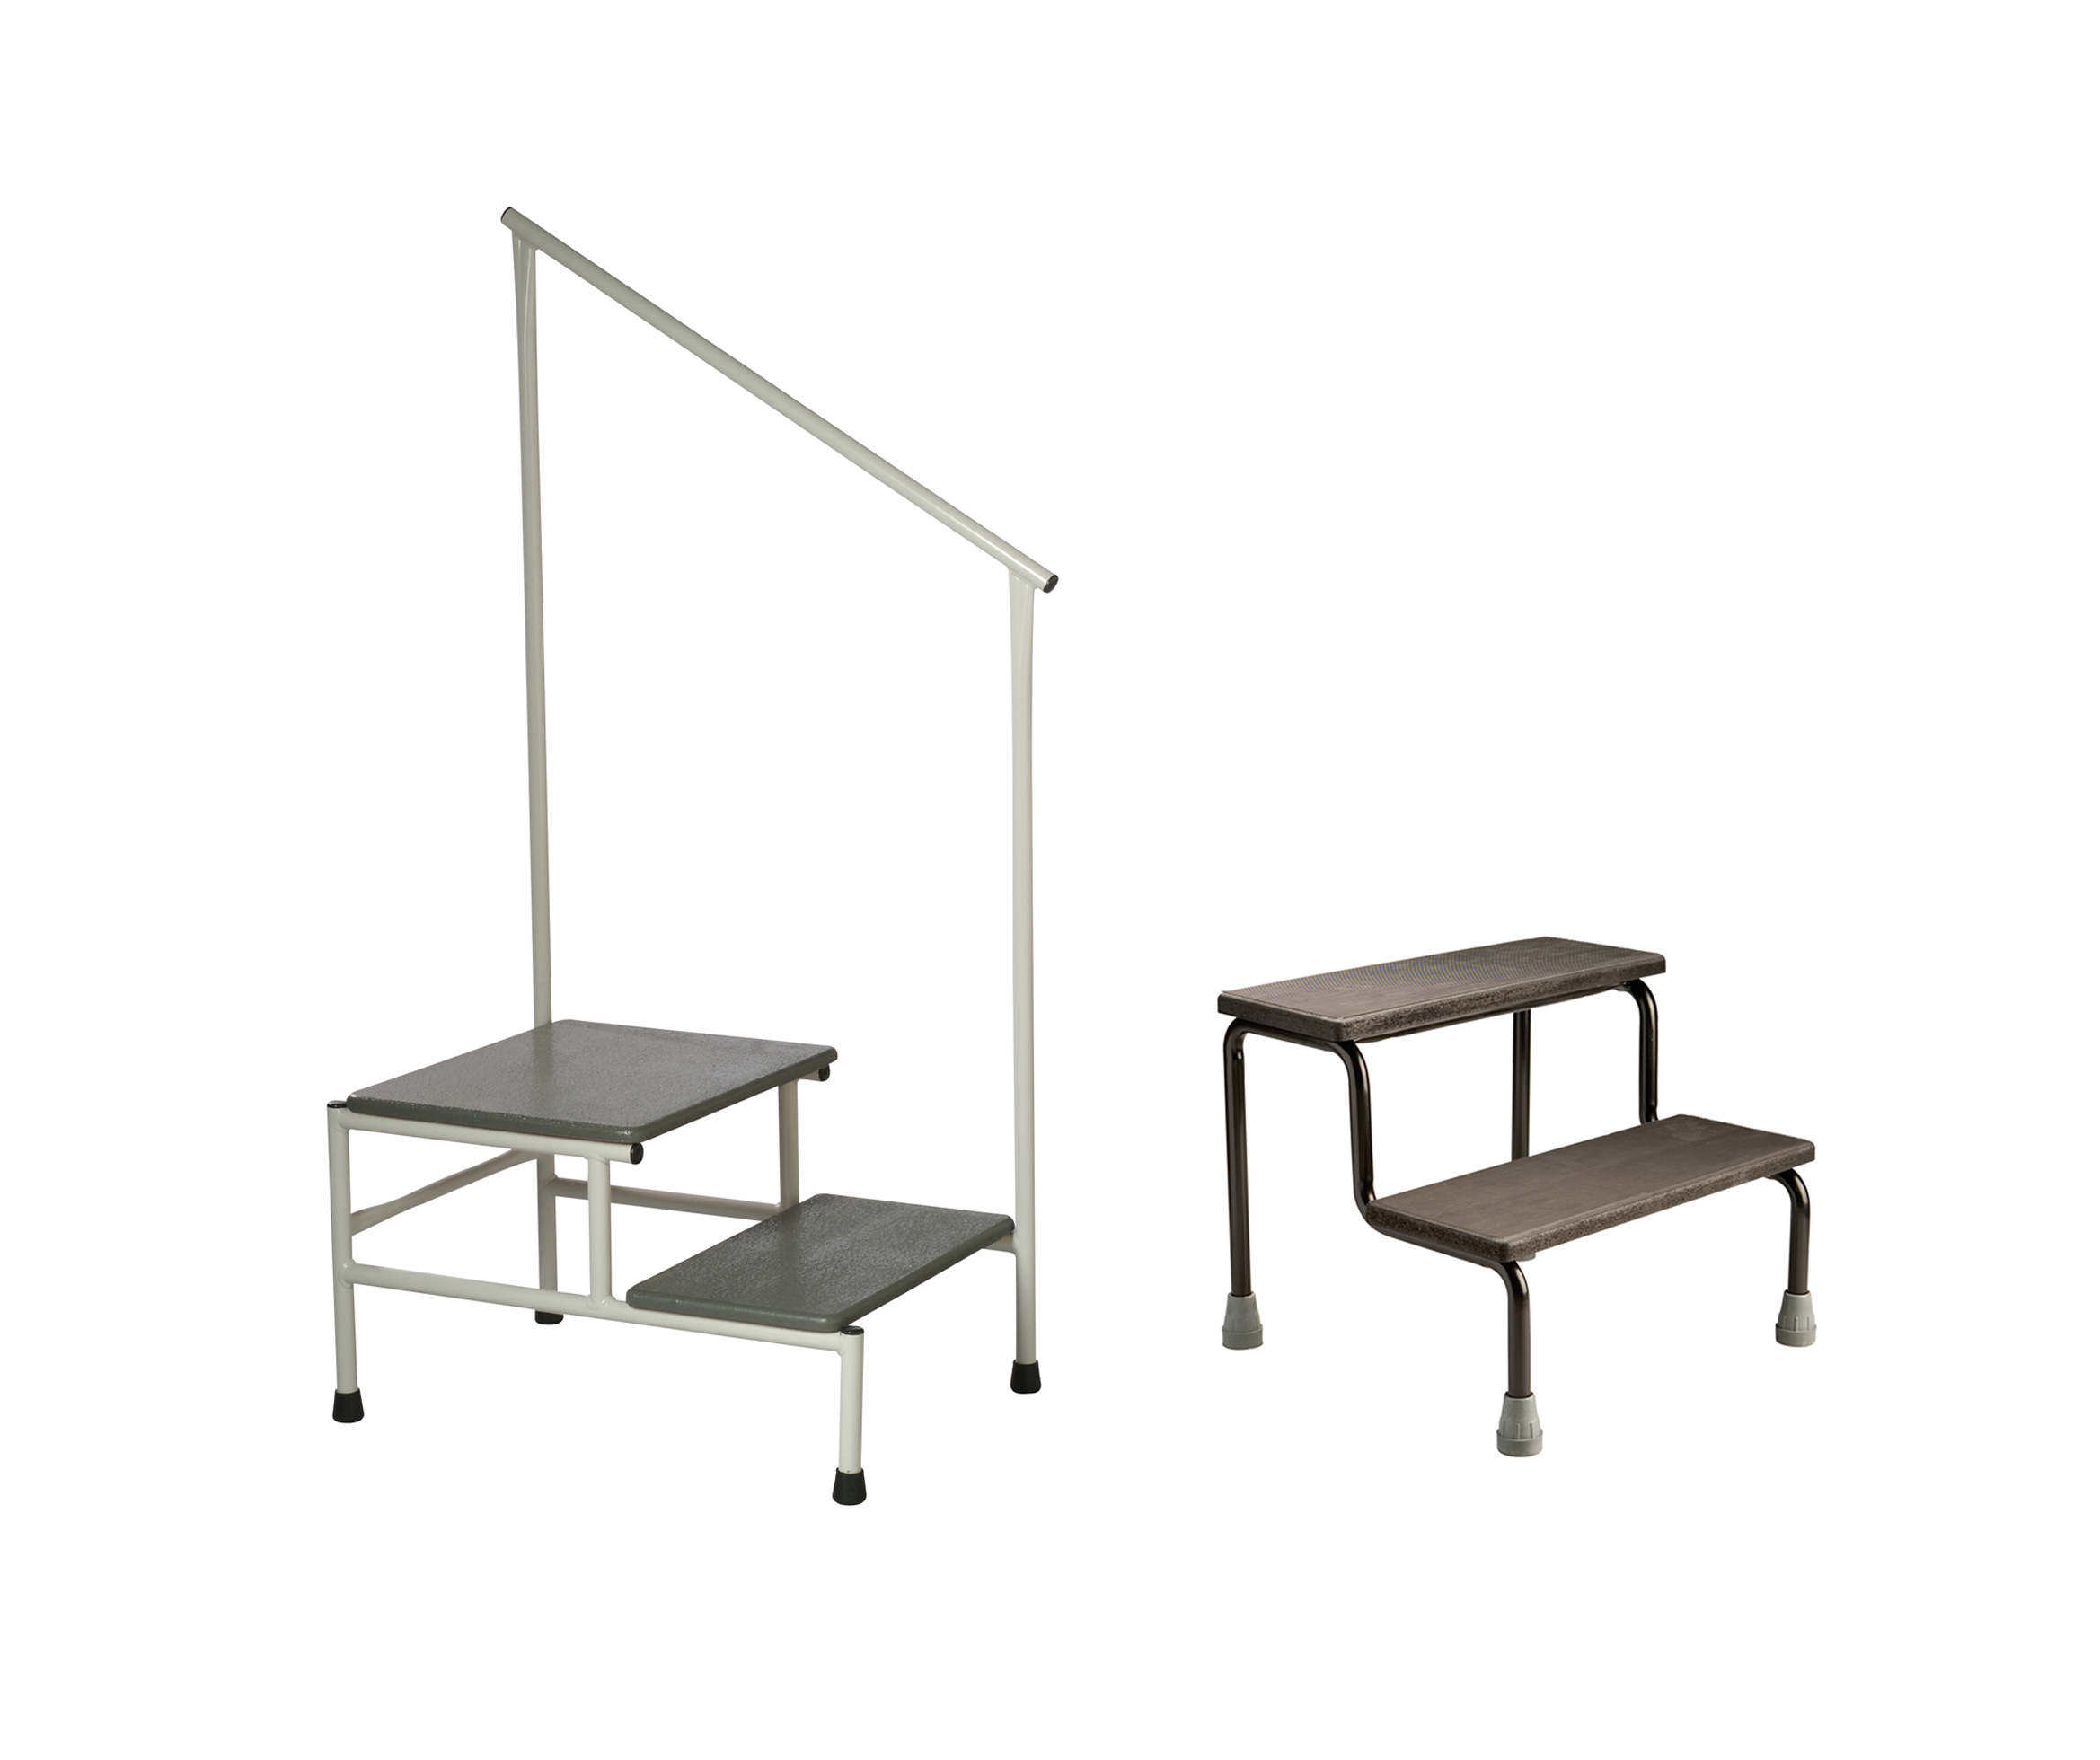 Double Step up Stools